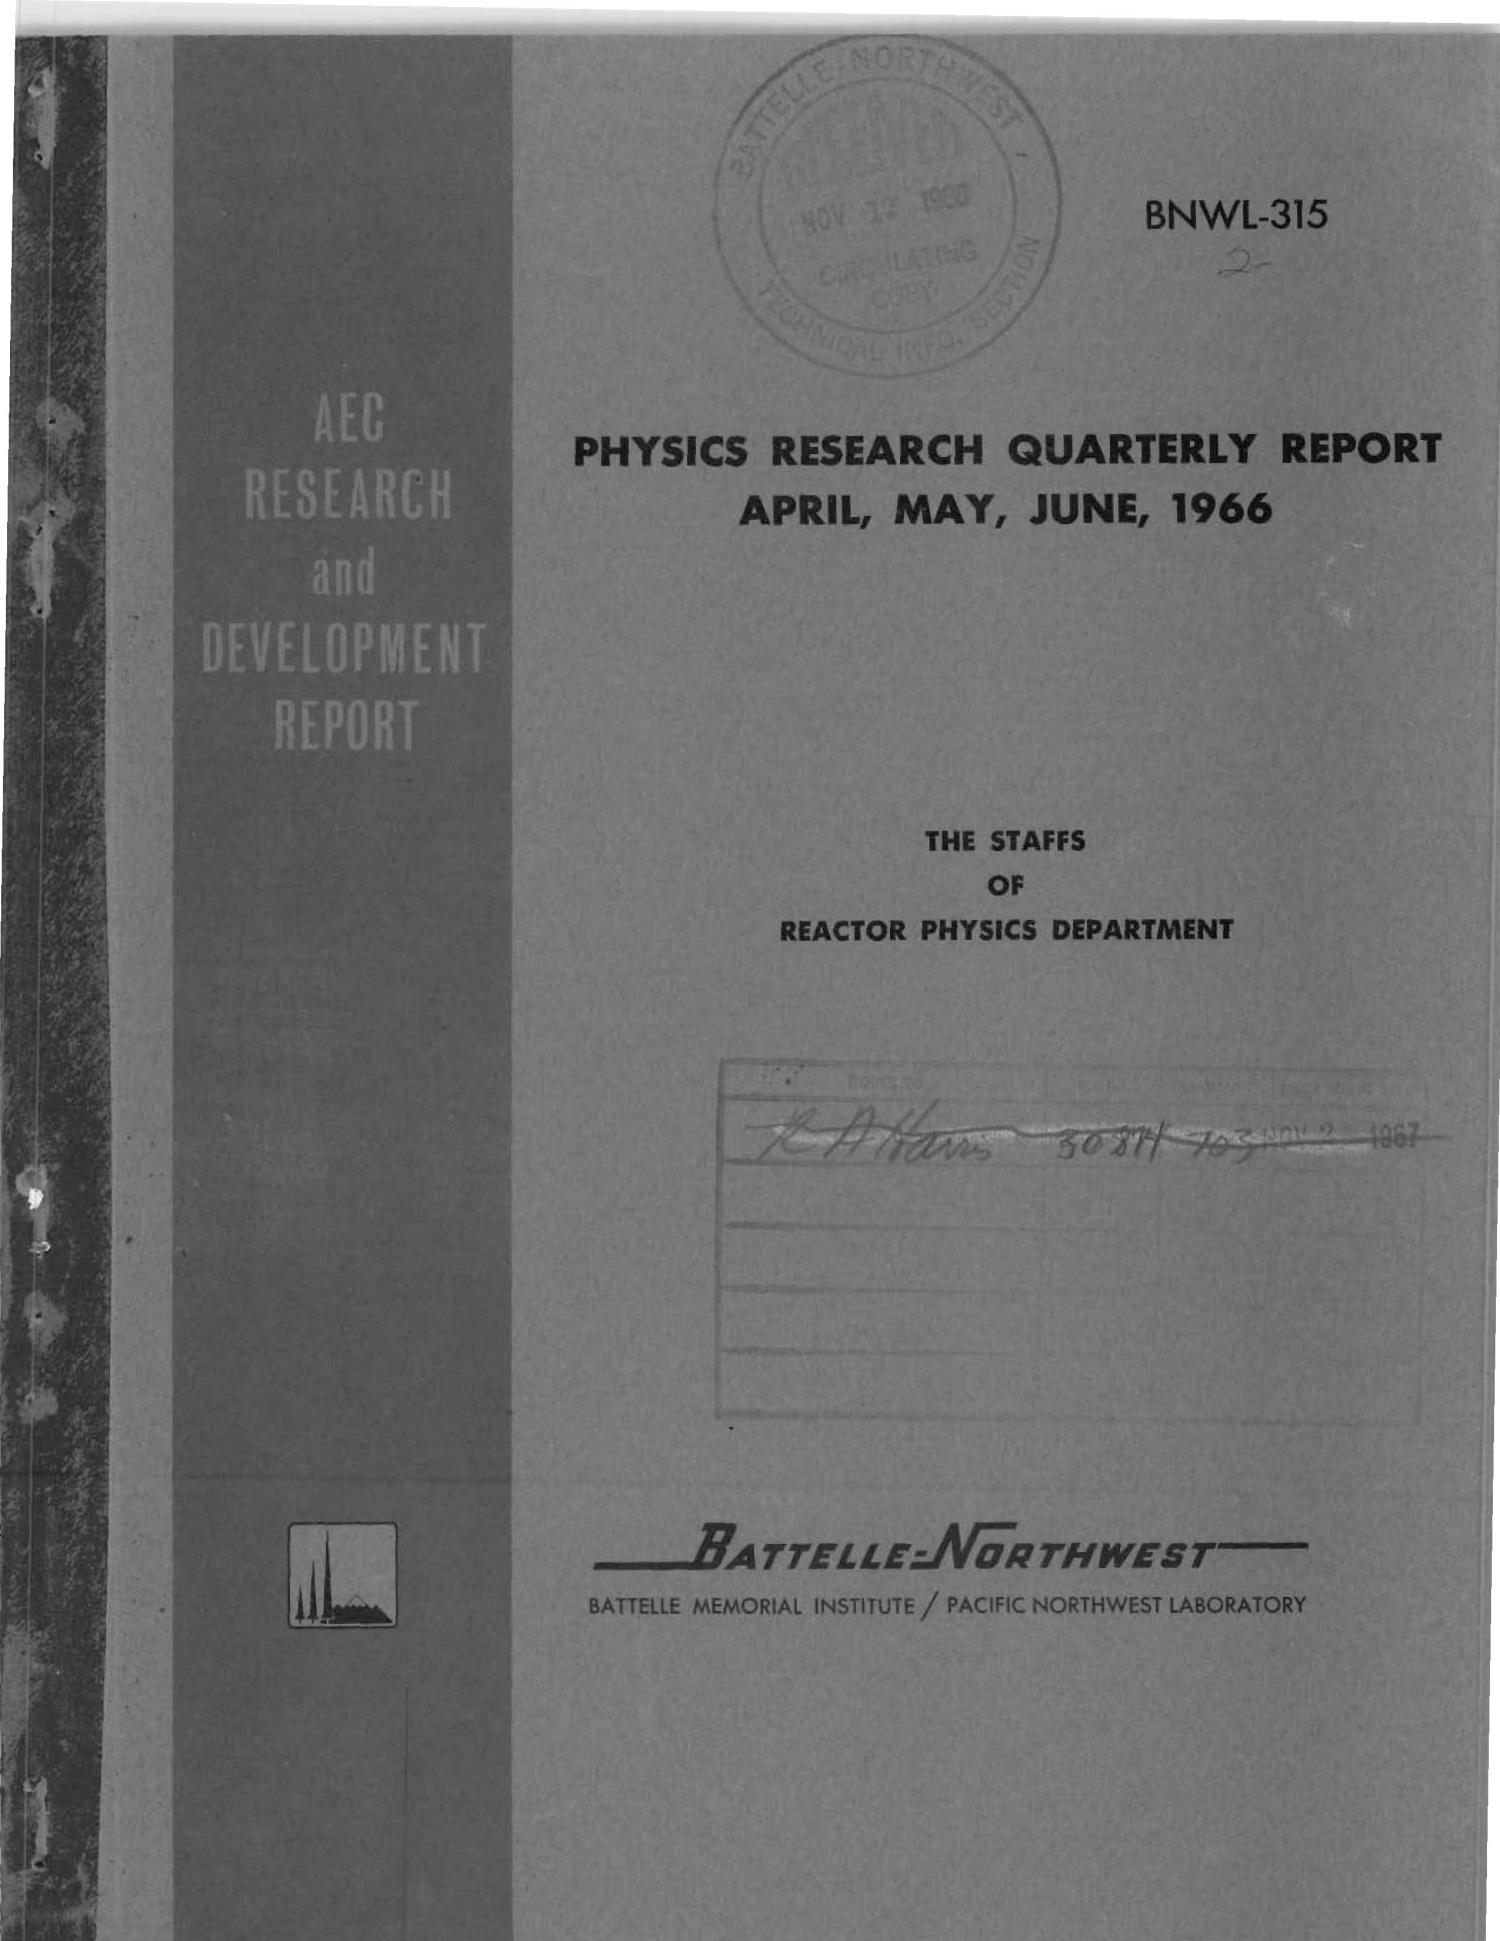 PHYSICS RESEARCH QUARTERLY REPORT, APRIL, MAY, JUNE 1966.                                                                                                      [Sequence #]: 1 of 20